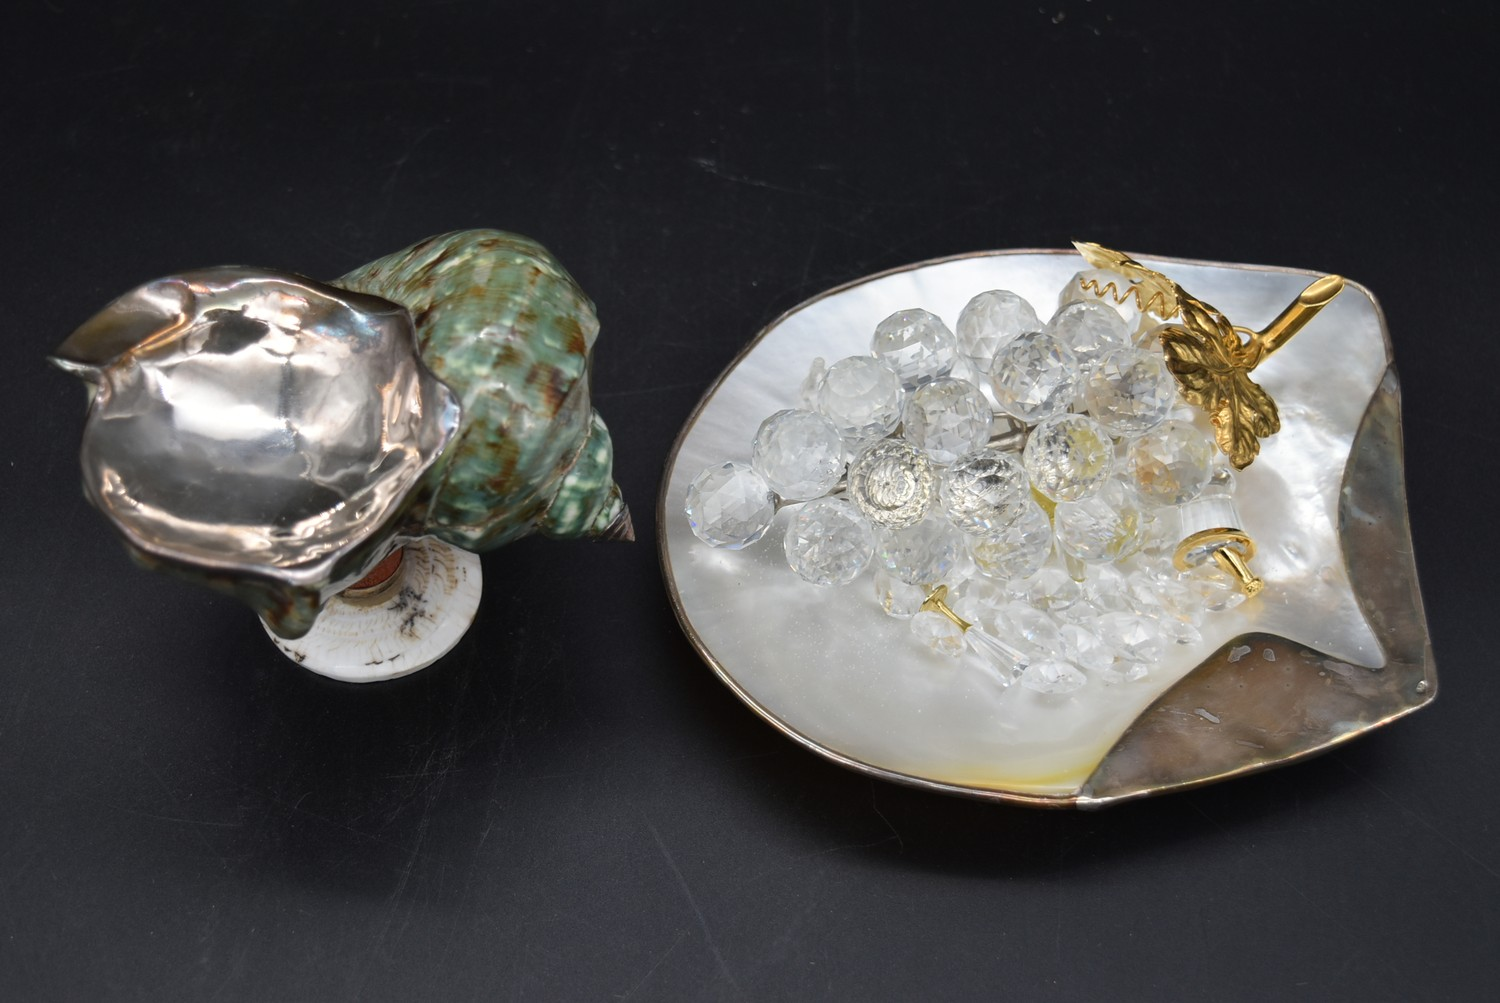 A collection of crystal and sea shells with a collection of Swarovski crystal pieces, including a - Image 2 of 8